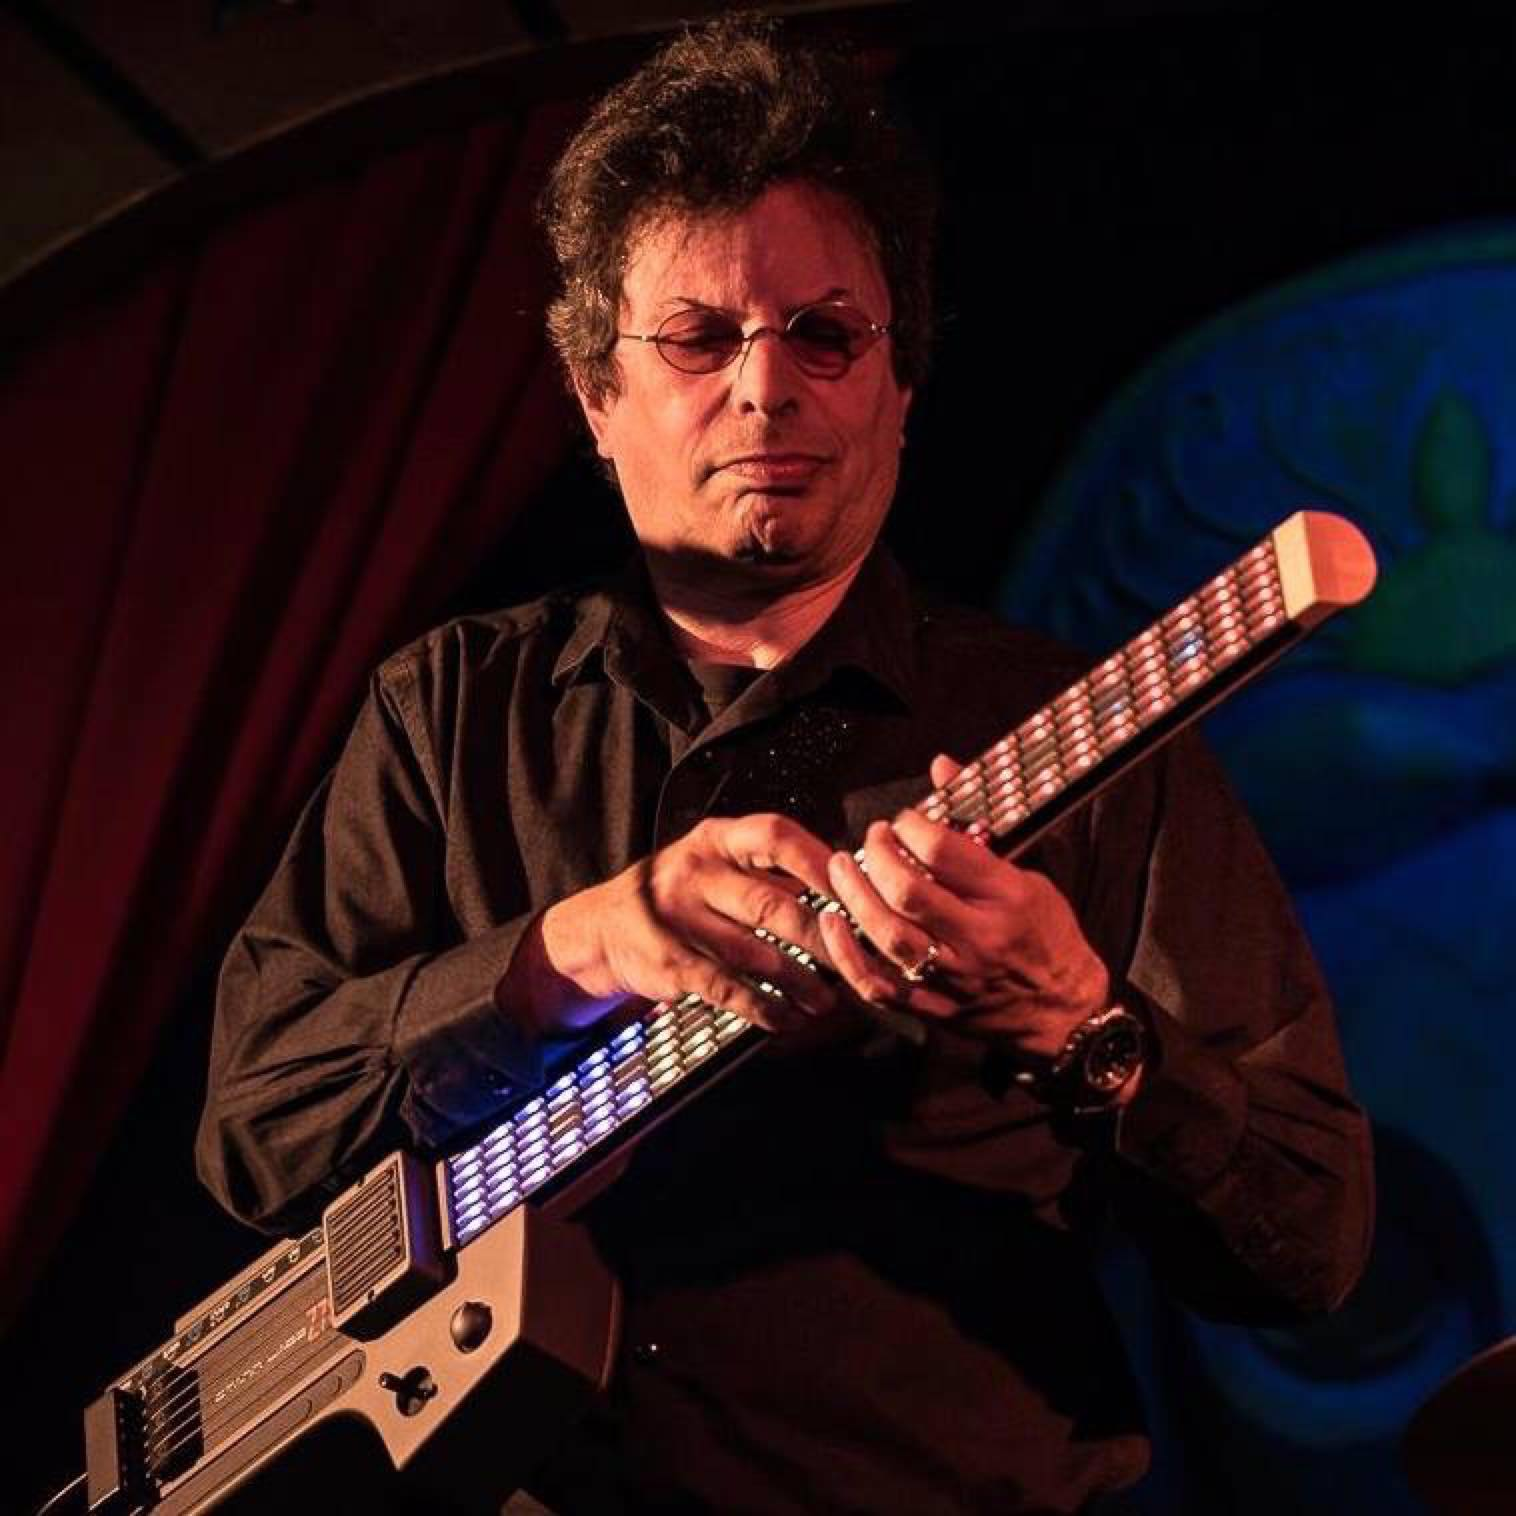 Interview with Progressive Rock Producer & Composer Les Fradkin